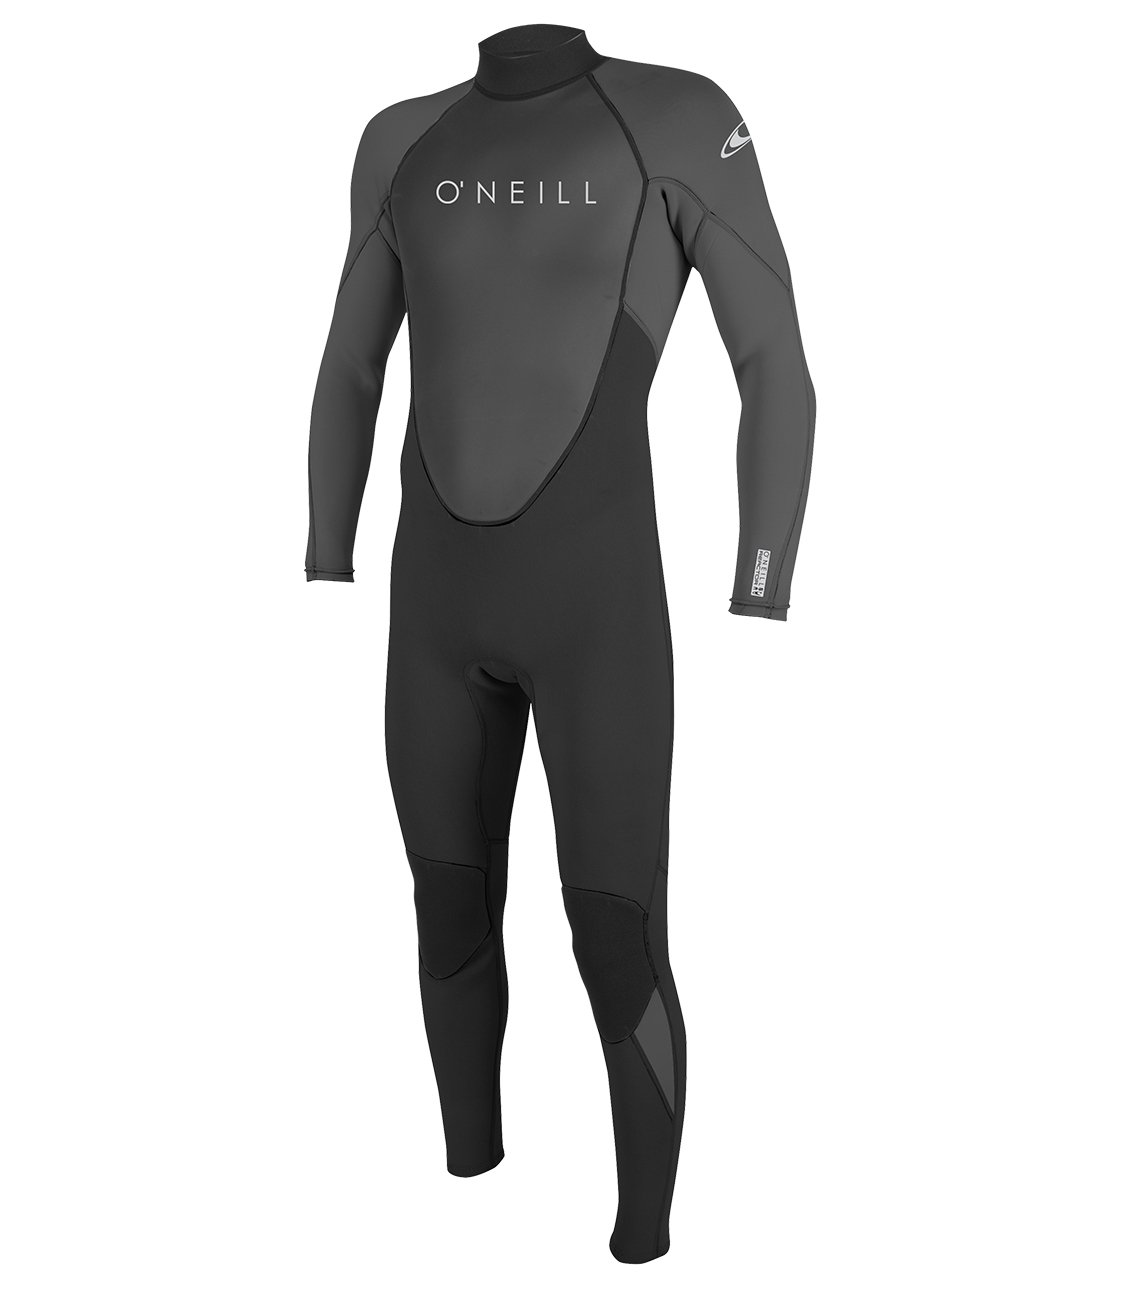 O'Neill Men's Reactor II 3/2mm Back Zip Full Wetsuit, Black/Graphite, Large Tall by O'Neill Wetsuits